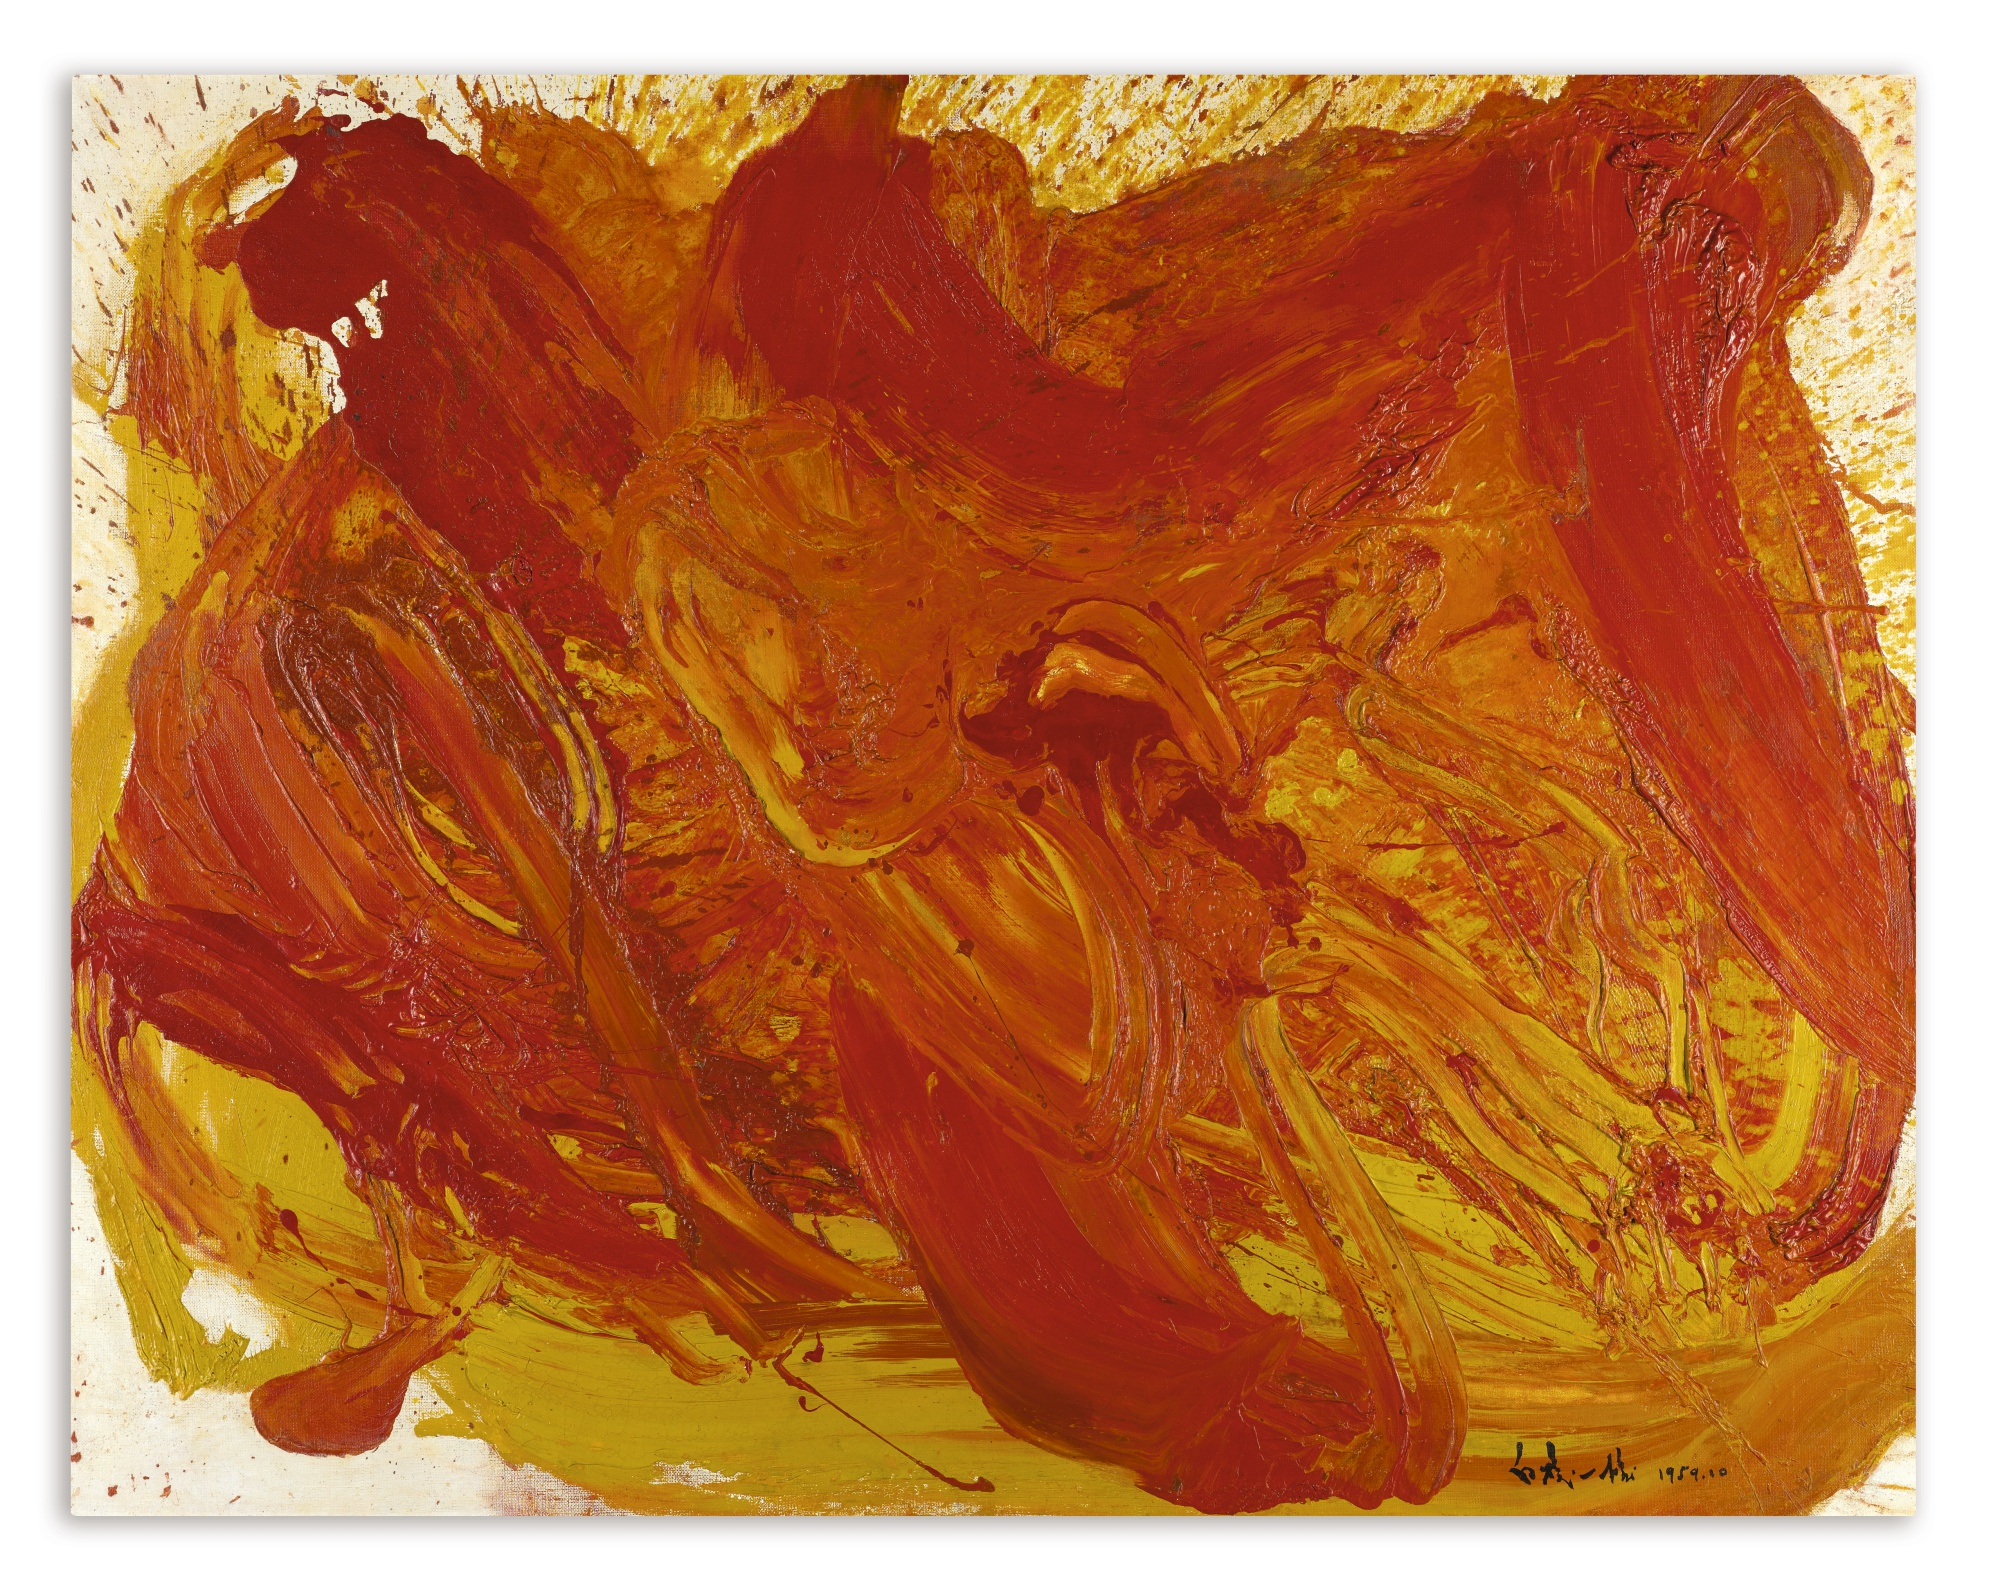 Kazuo Shiraga-Untitled-1959